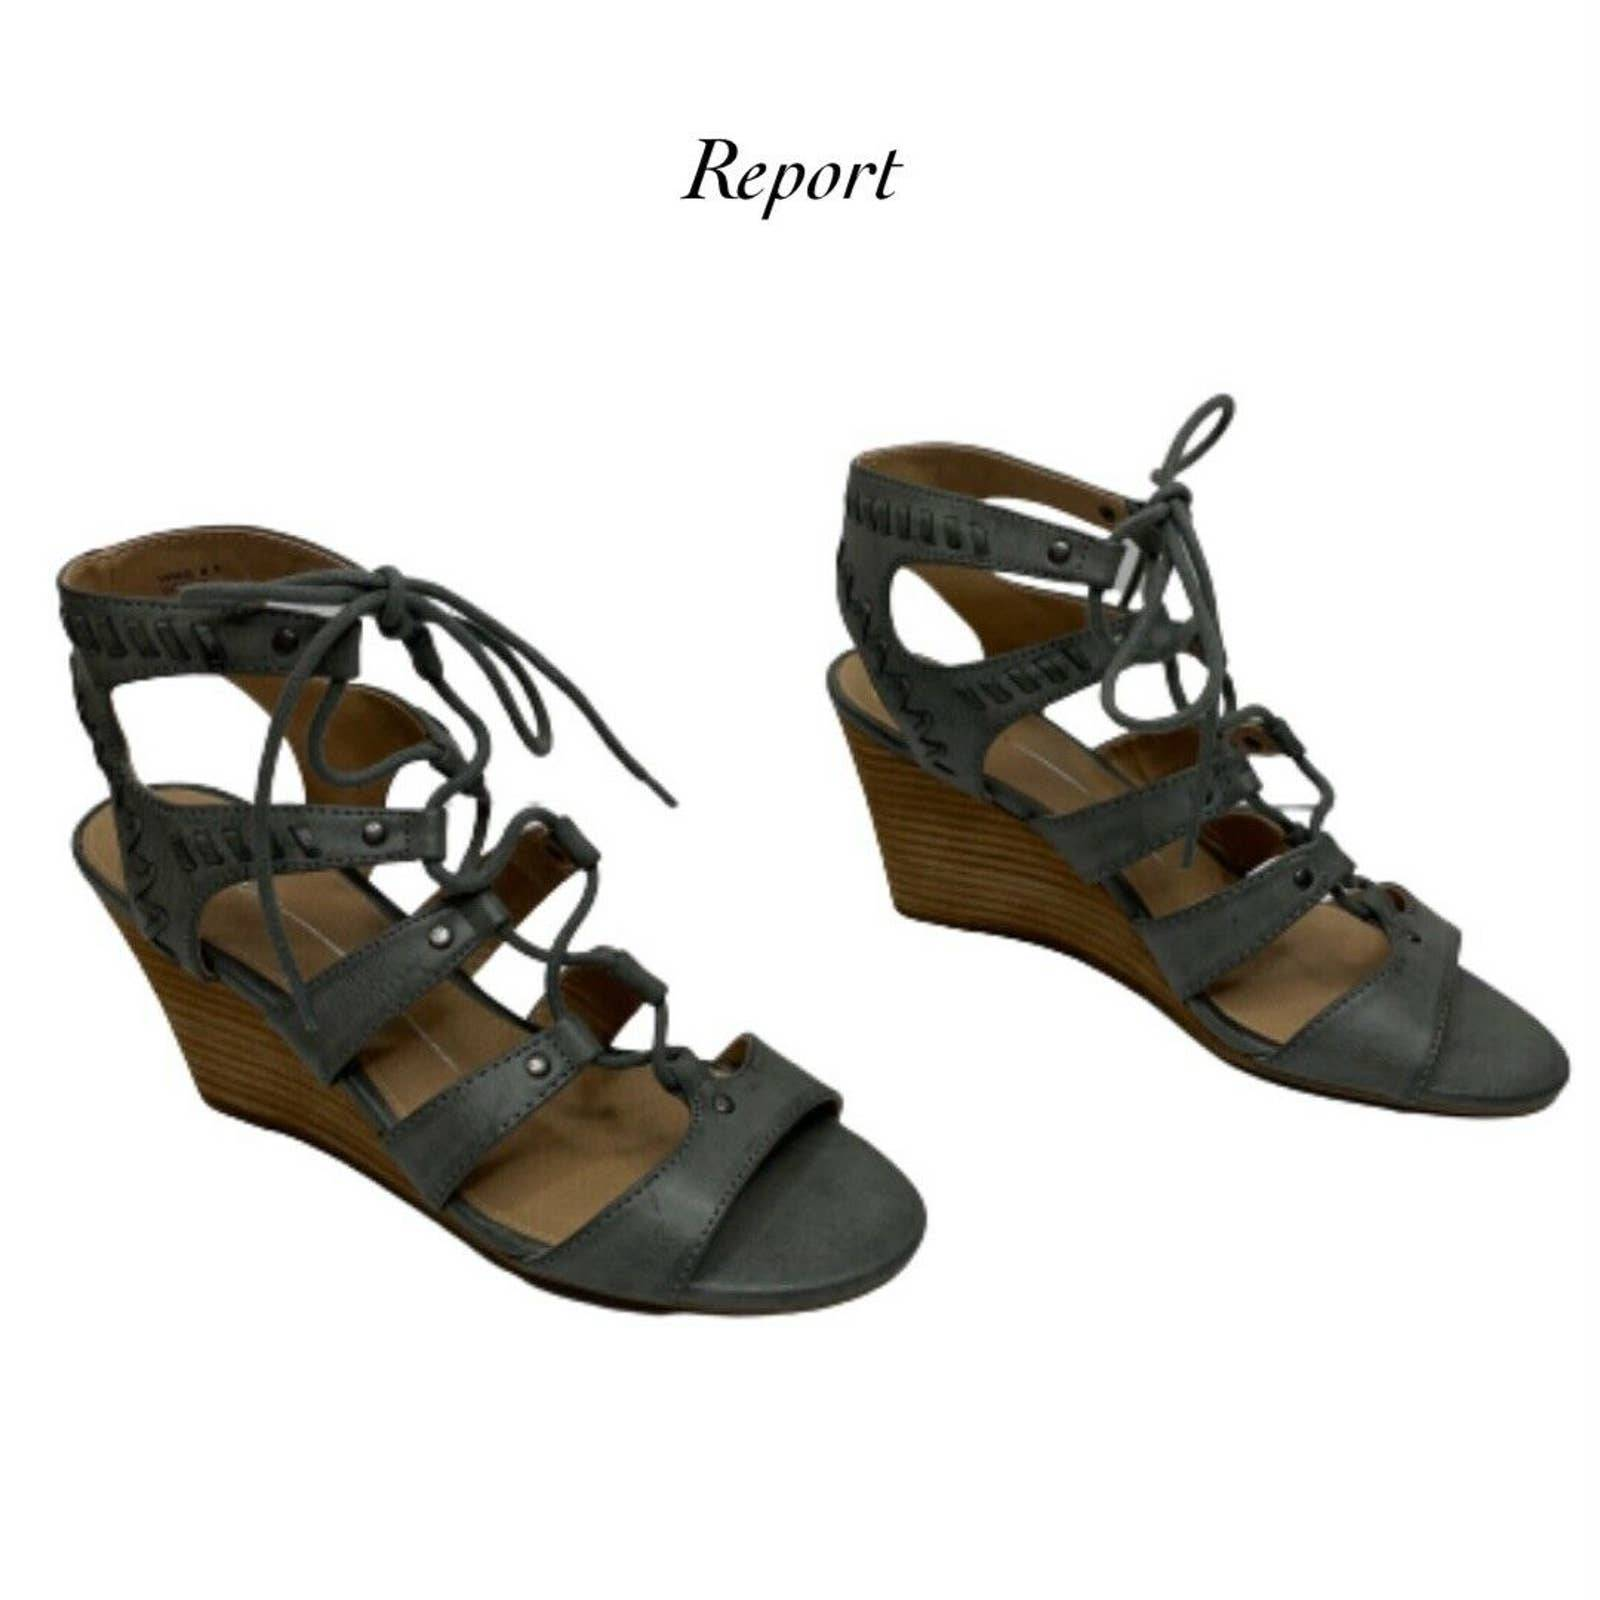 Report Scout Gray Wedge Sandals Size 8.5